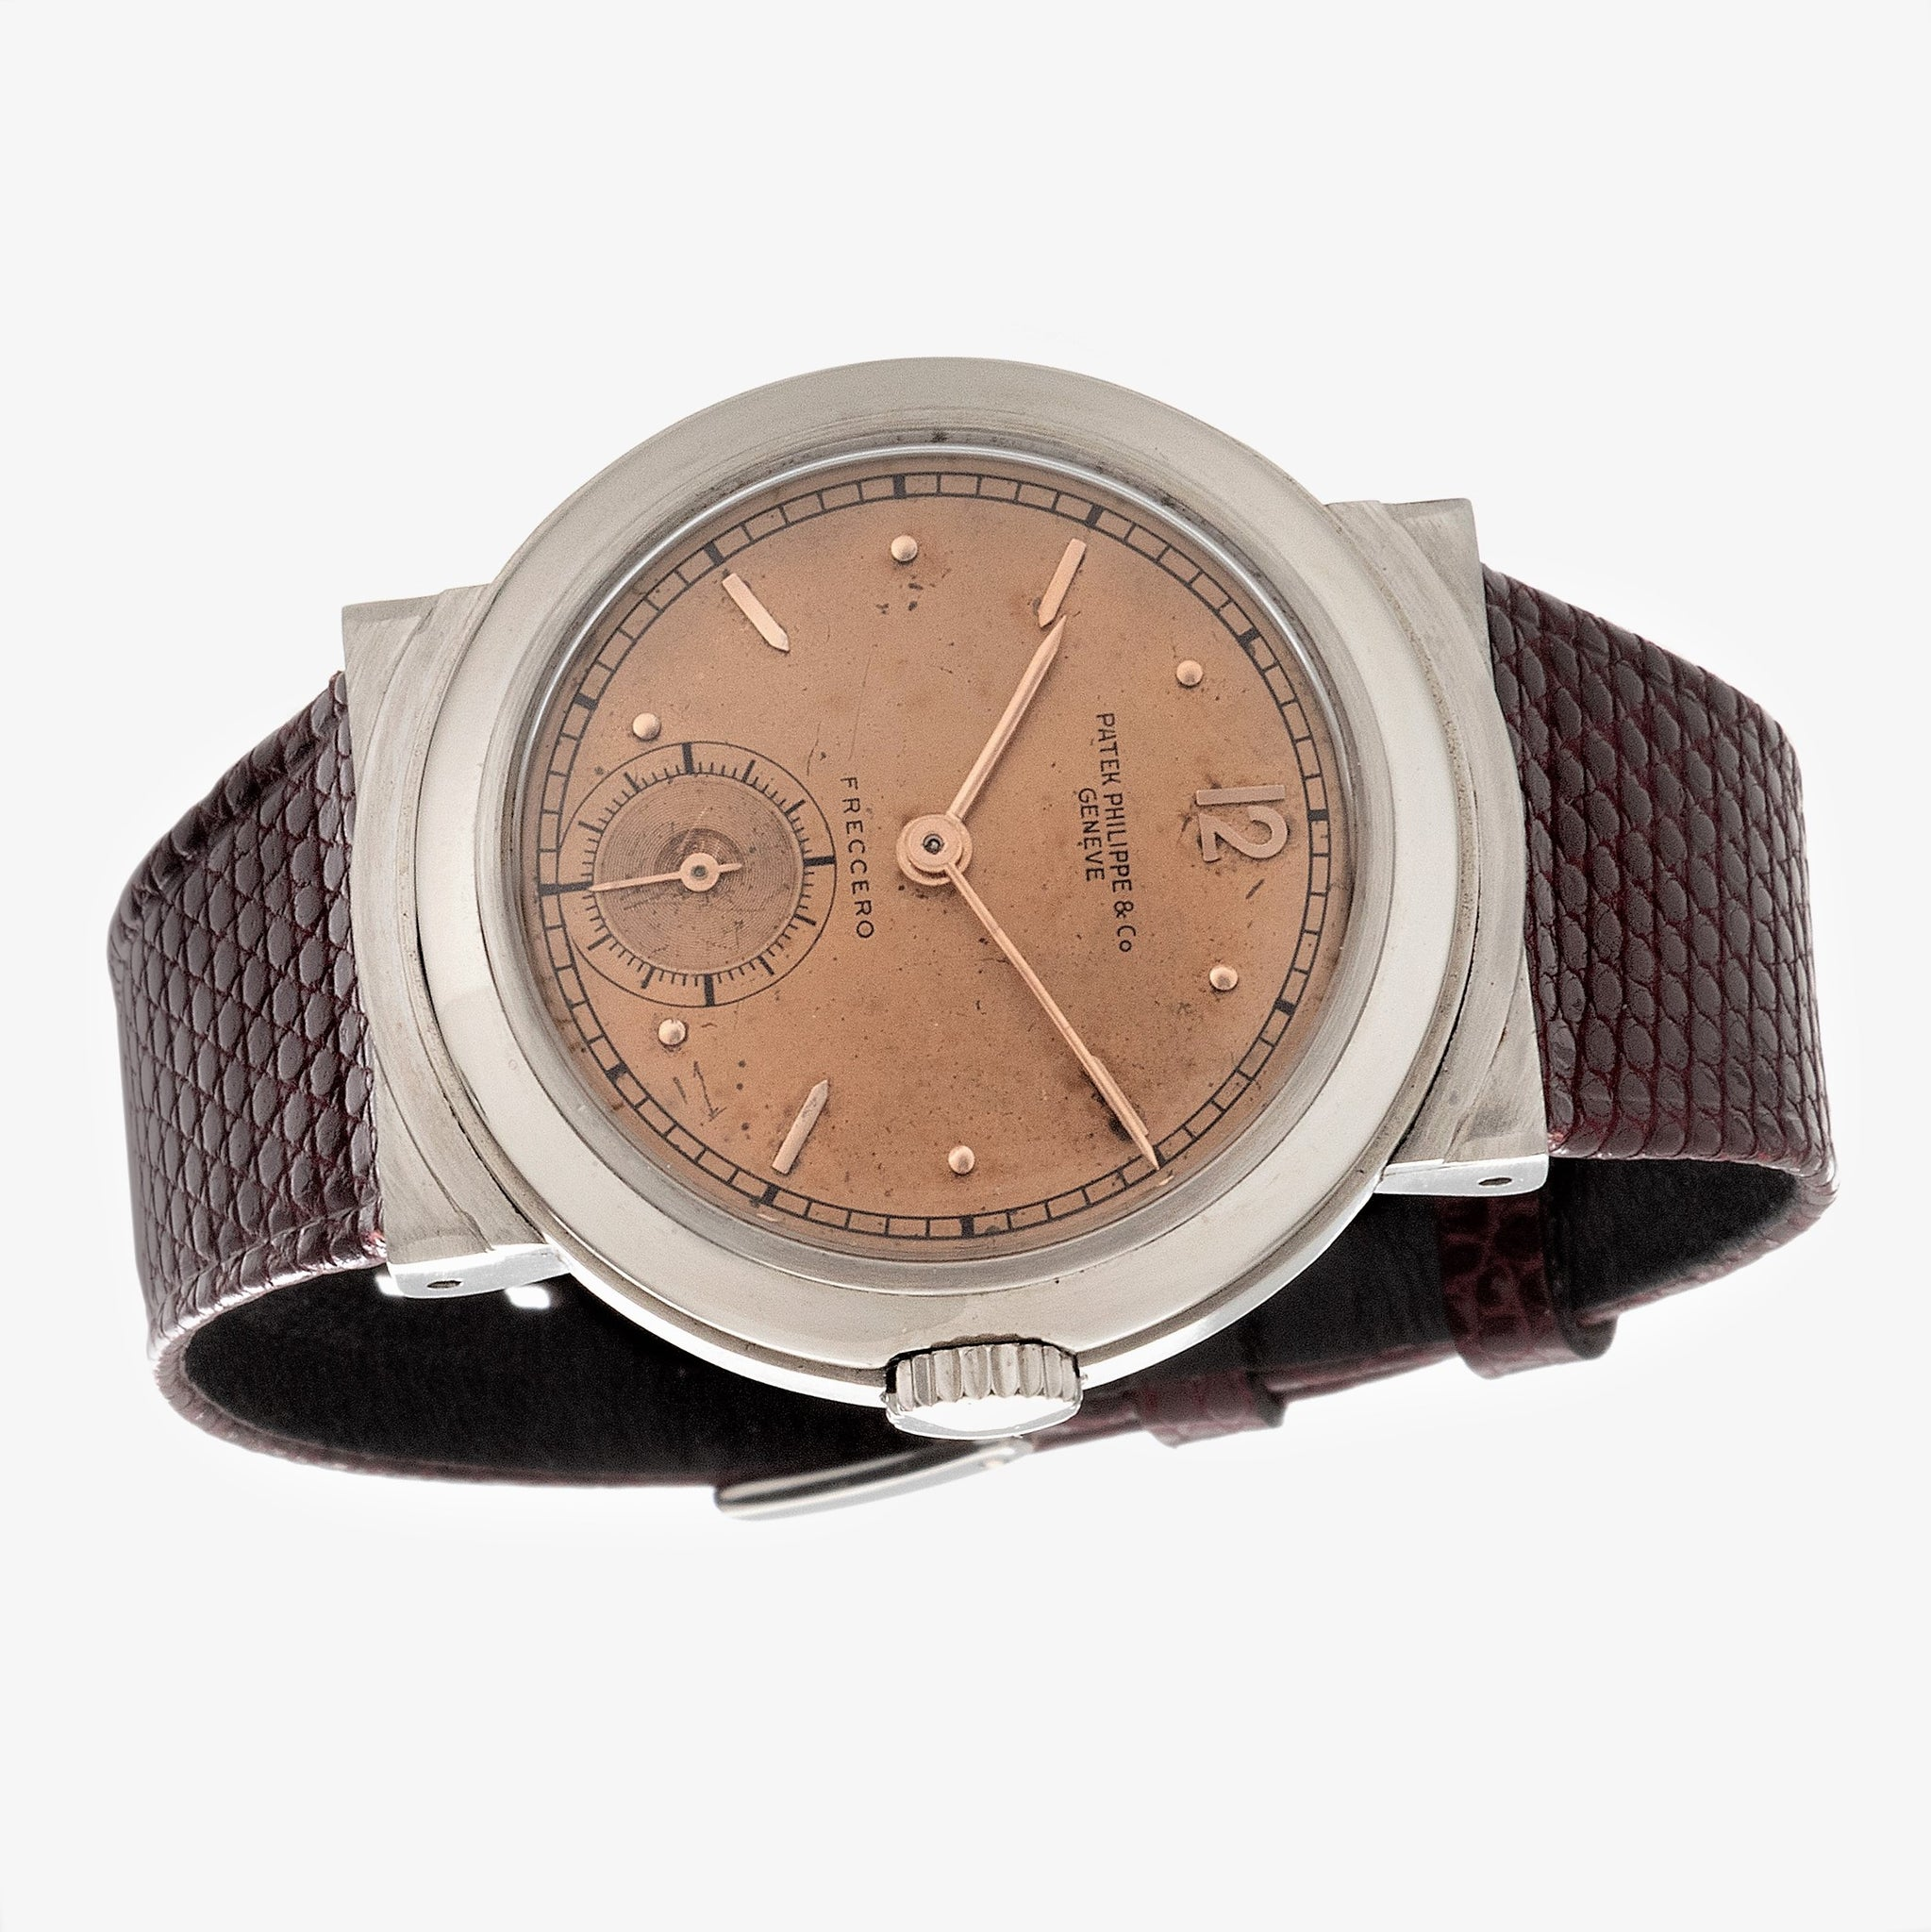 Patek Philippe 544A Stainless Steel Hooded Calatrava Watch